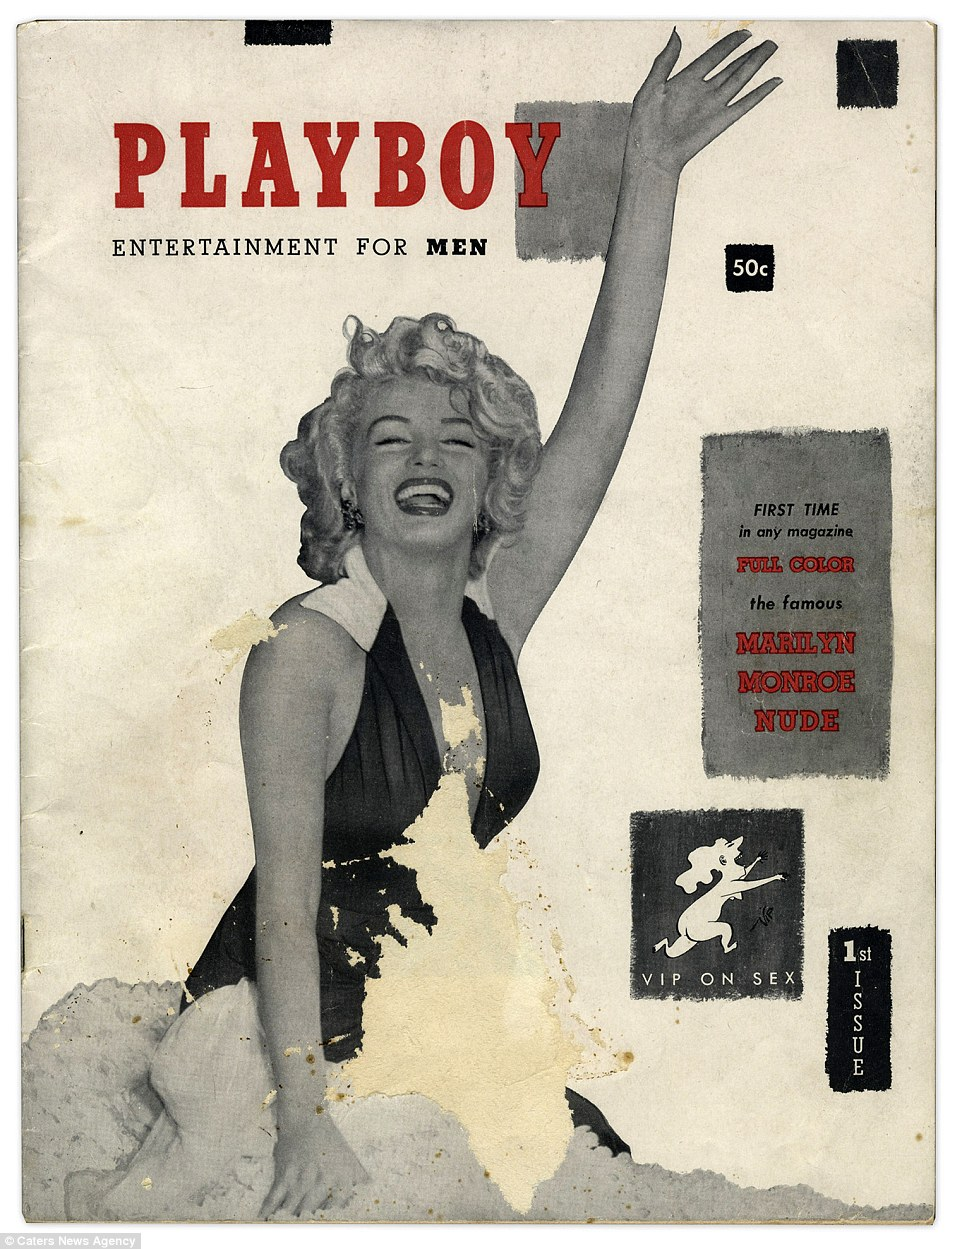 Side bar:In the first ever issue of Playboy there are instructions laid out inside for the unassuming and naive woman who might stumble across the magazine: 'If you're somebody's sister, wife or mother-in-law and picked us up by mistake, please pass us along to the man in your life and get back to your Ladies Home Companion.'